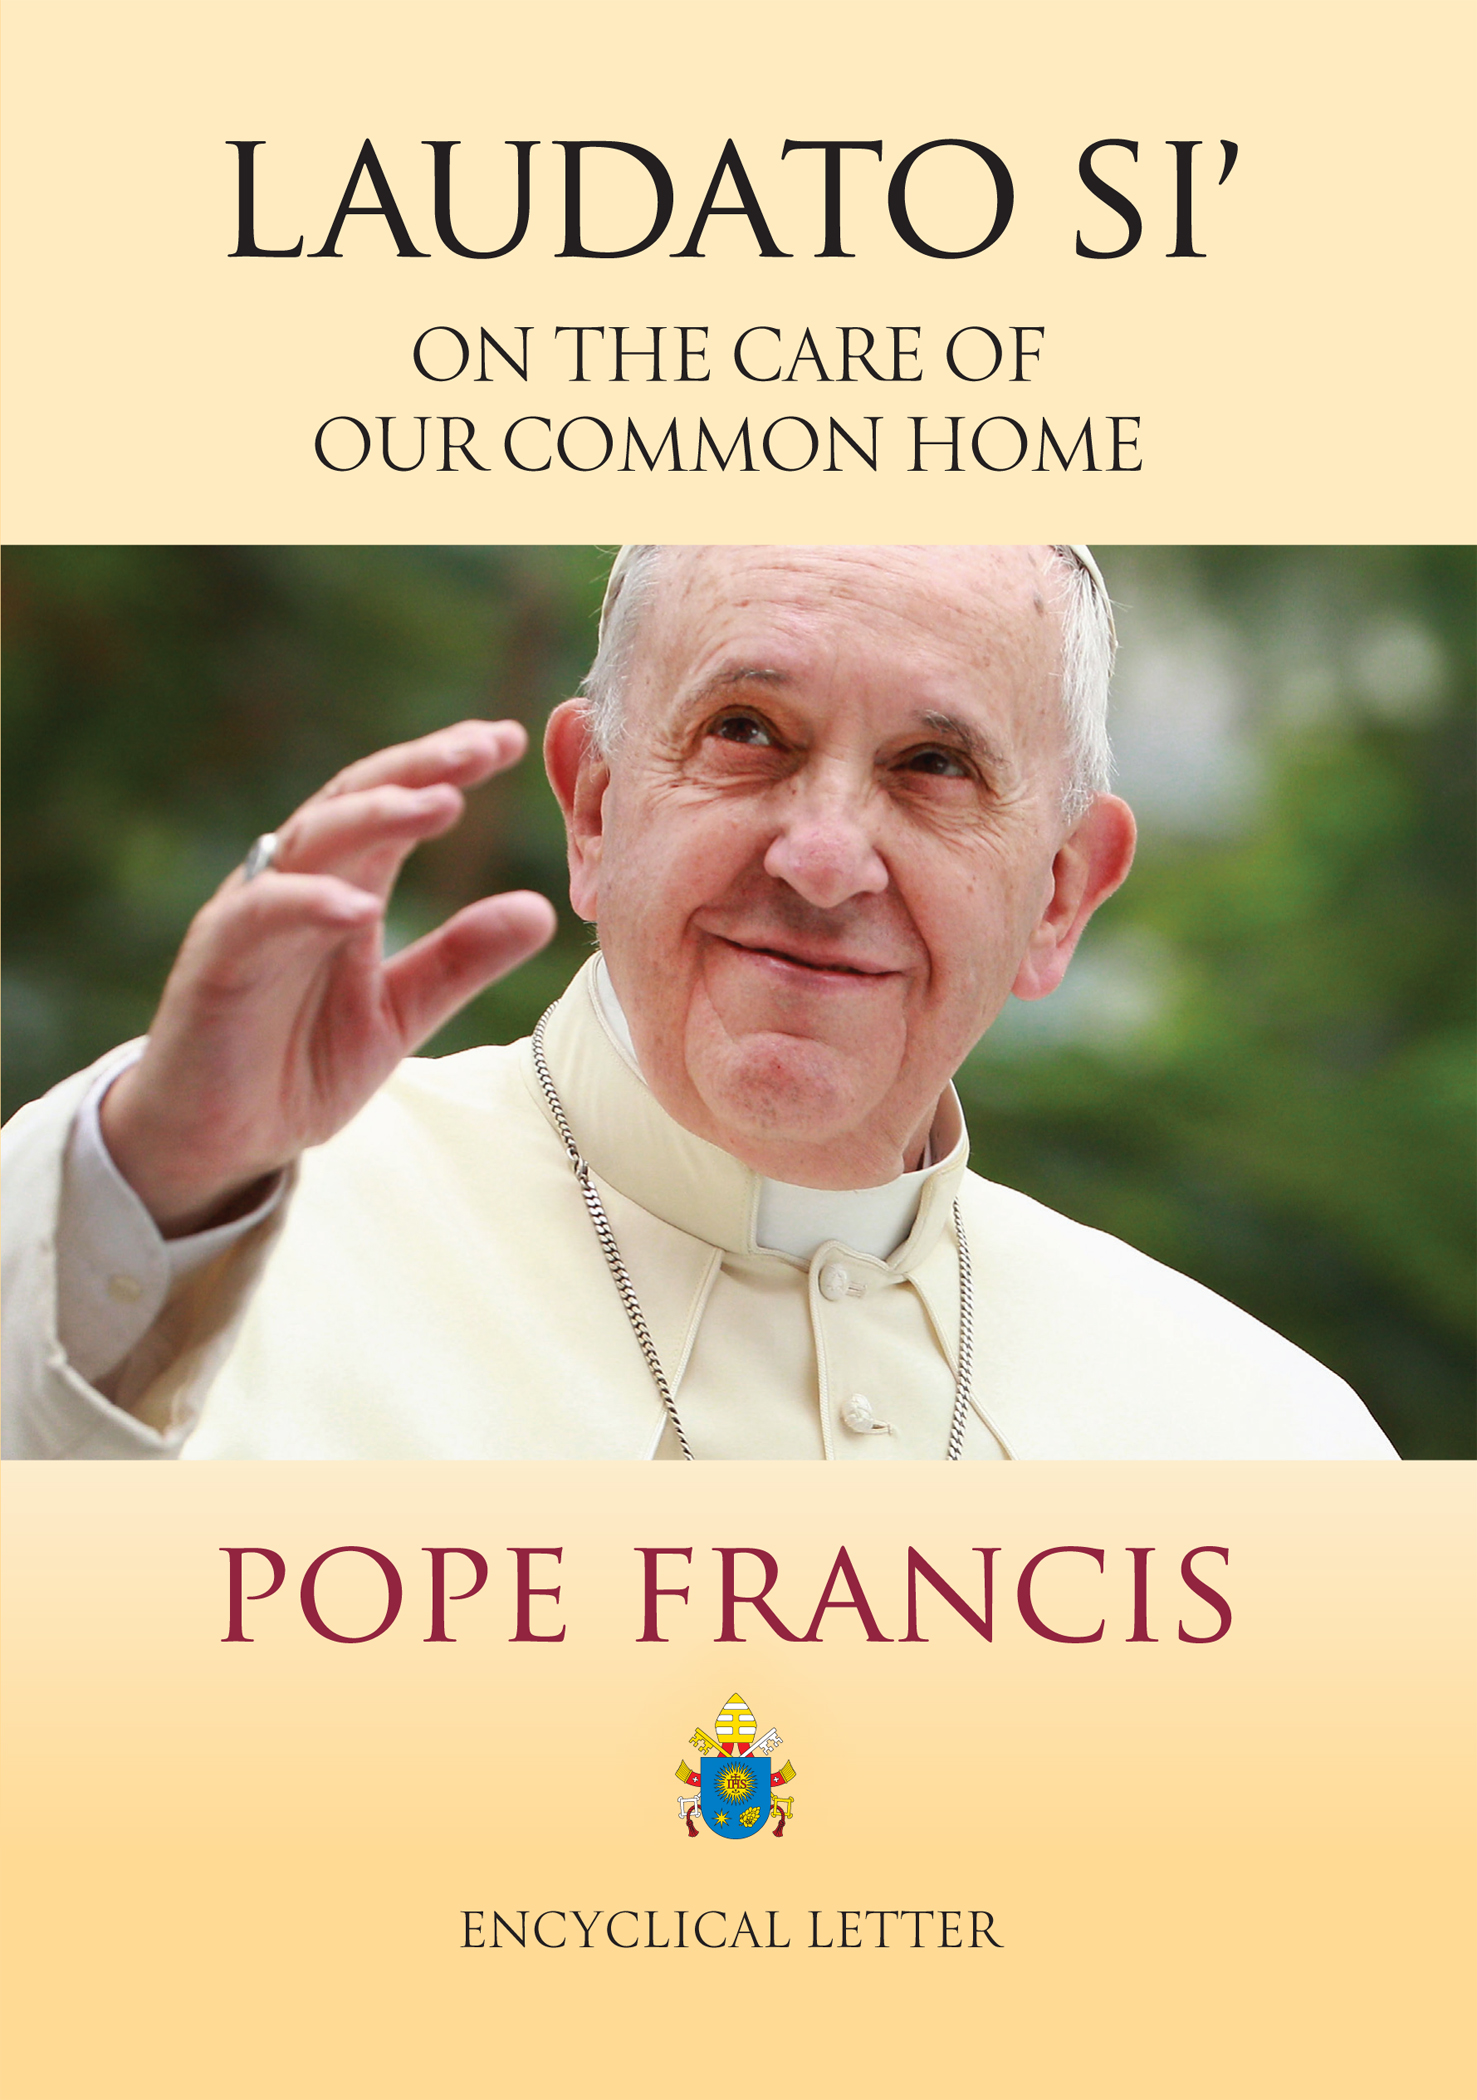 Read the full text of Pope Francis' encyclical, Laudato Si